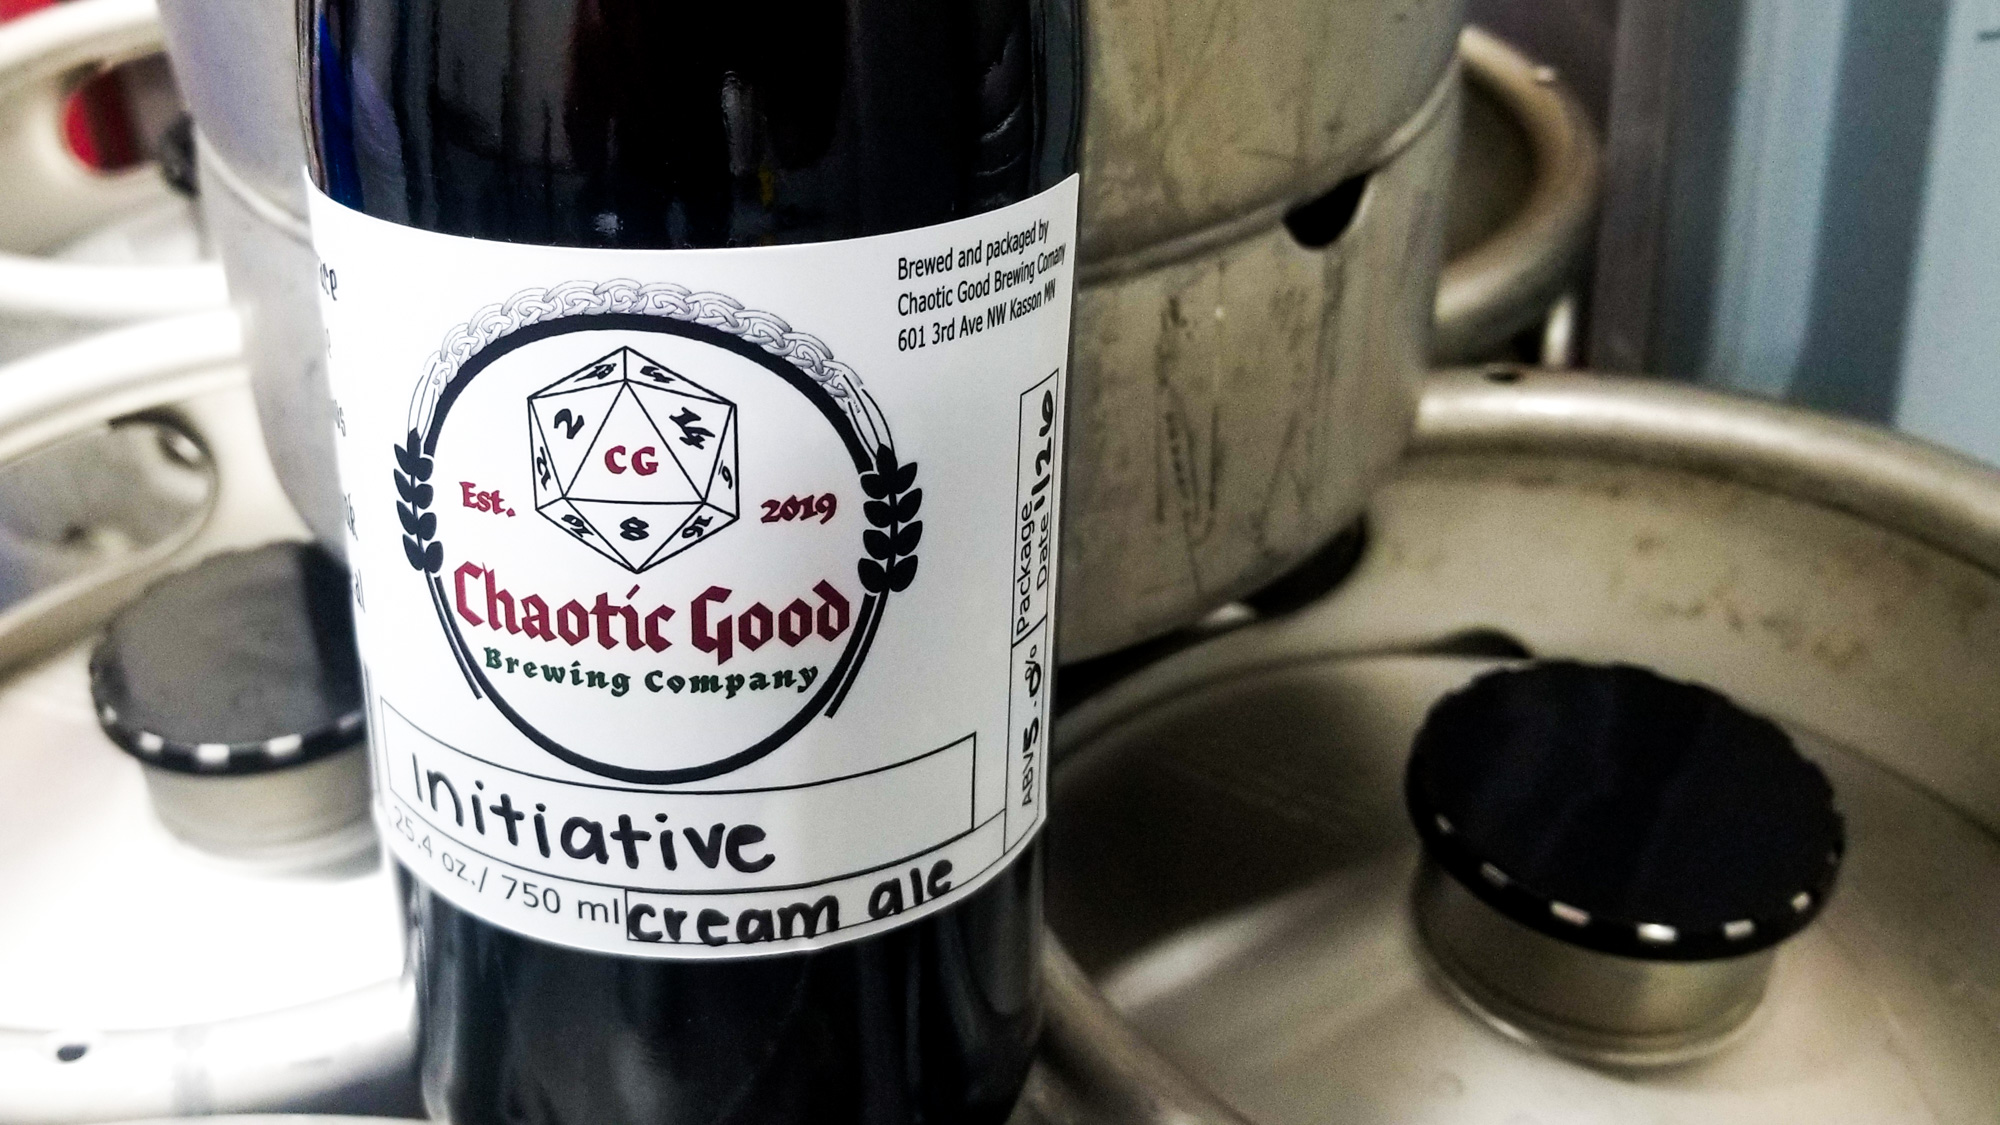 Initiative Cream Ale from Chaotic Good Brewing Company in Kasson, Minnesota • Photo by Scott Stroh